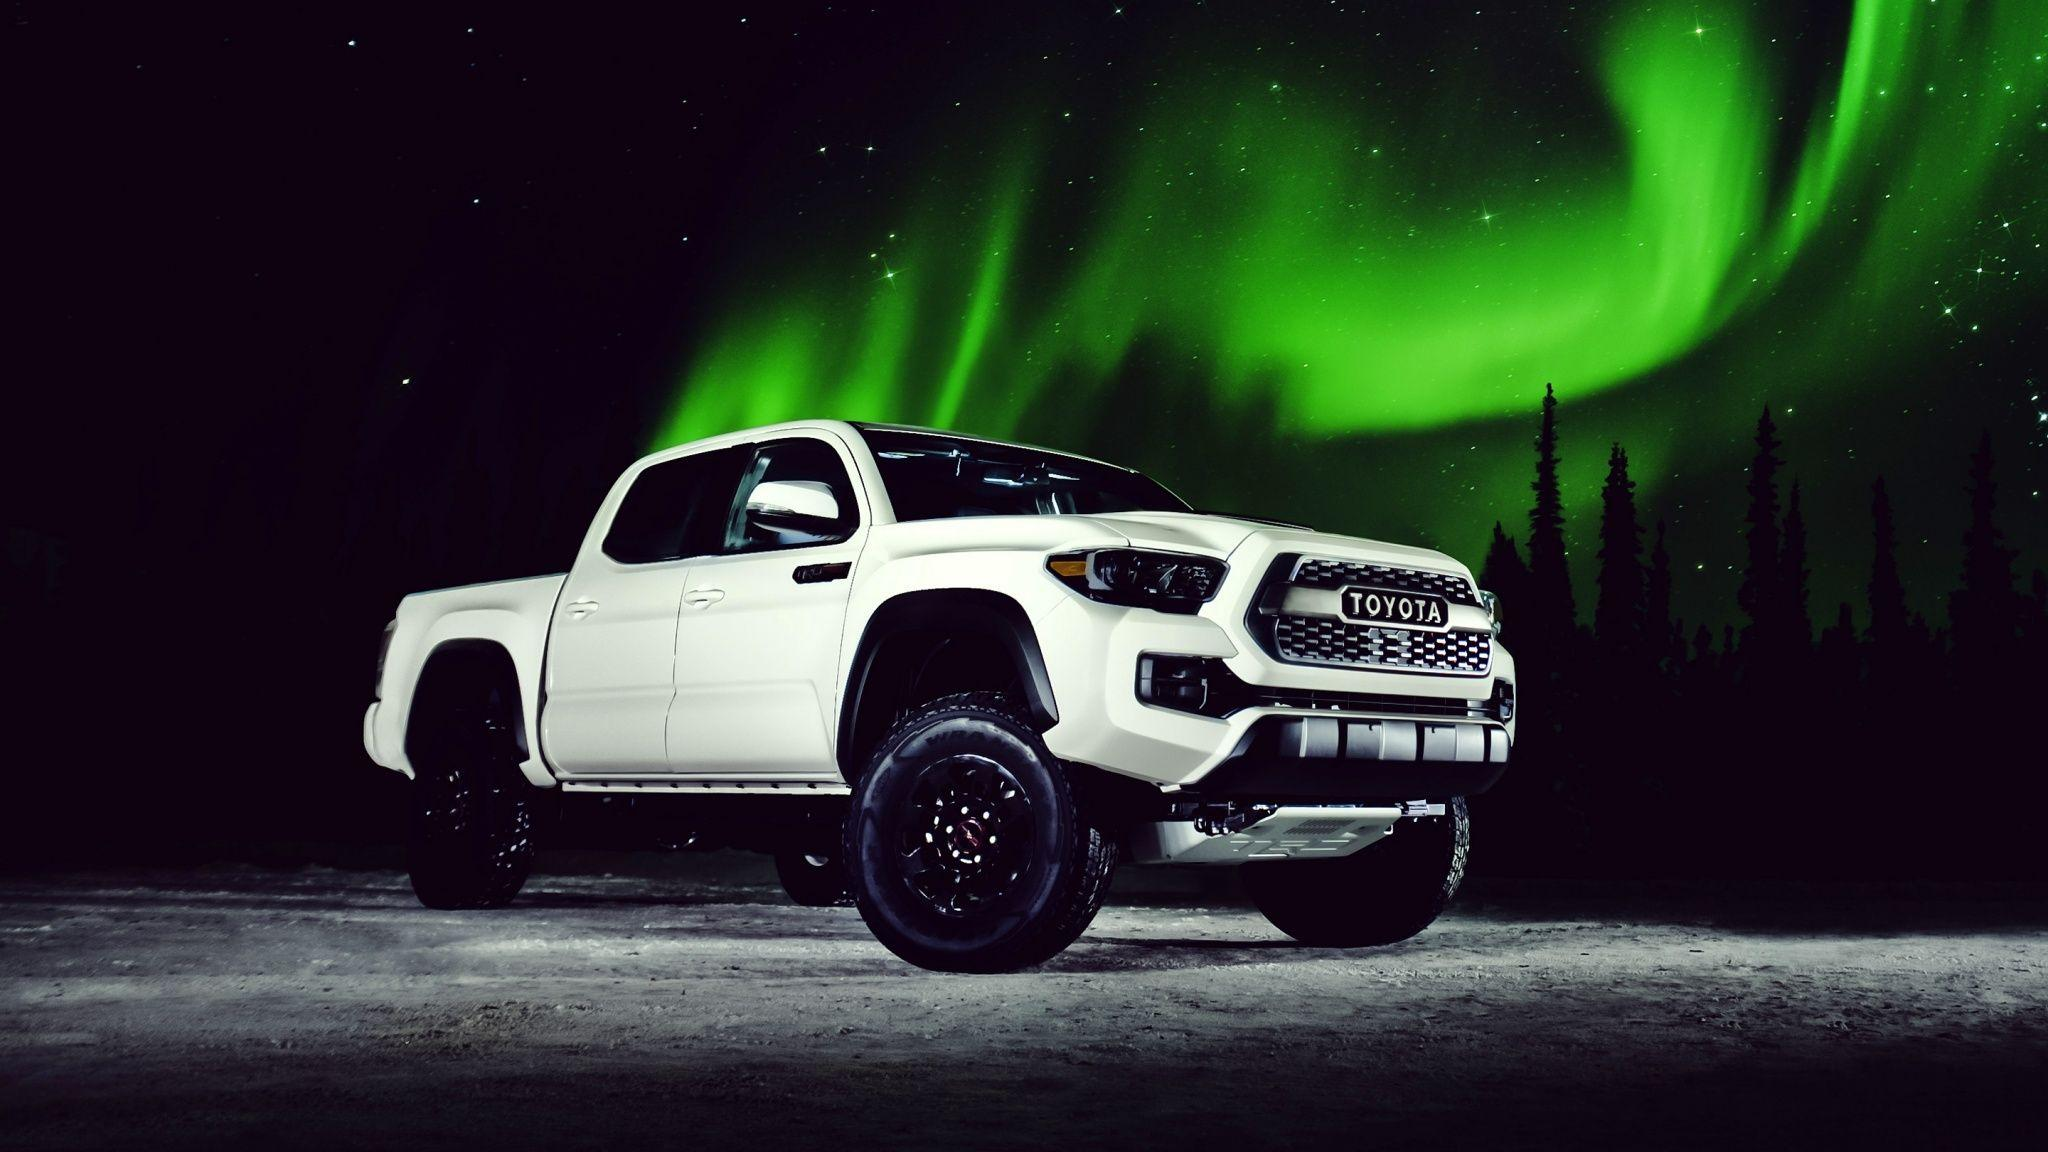 Toyota Tacoma TRD Pro 2017 Wallpapers